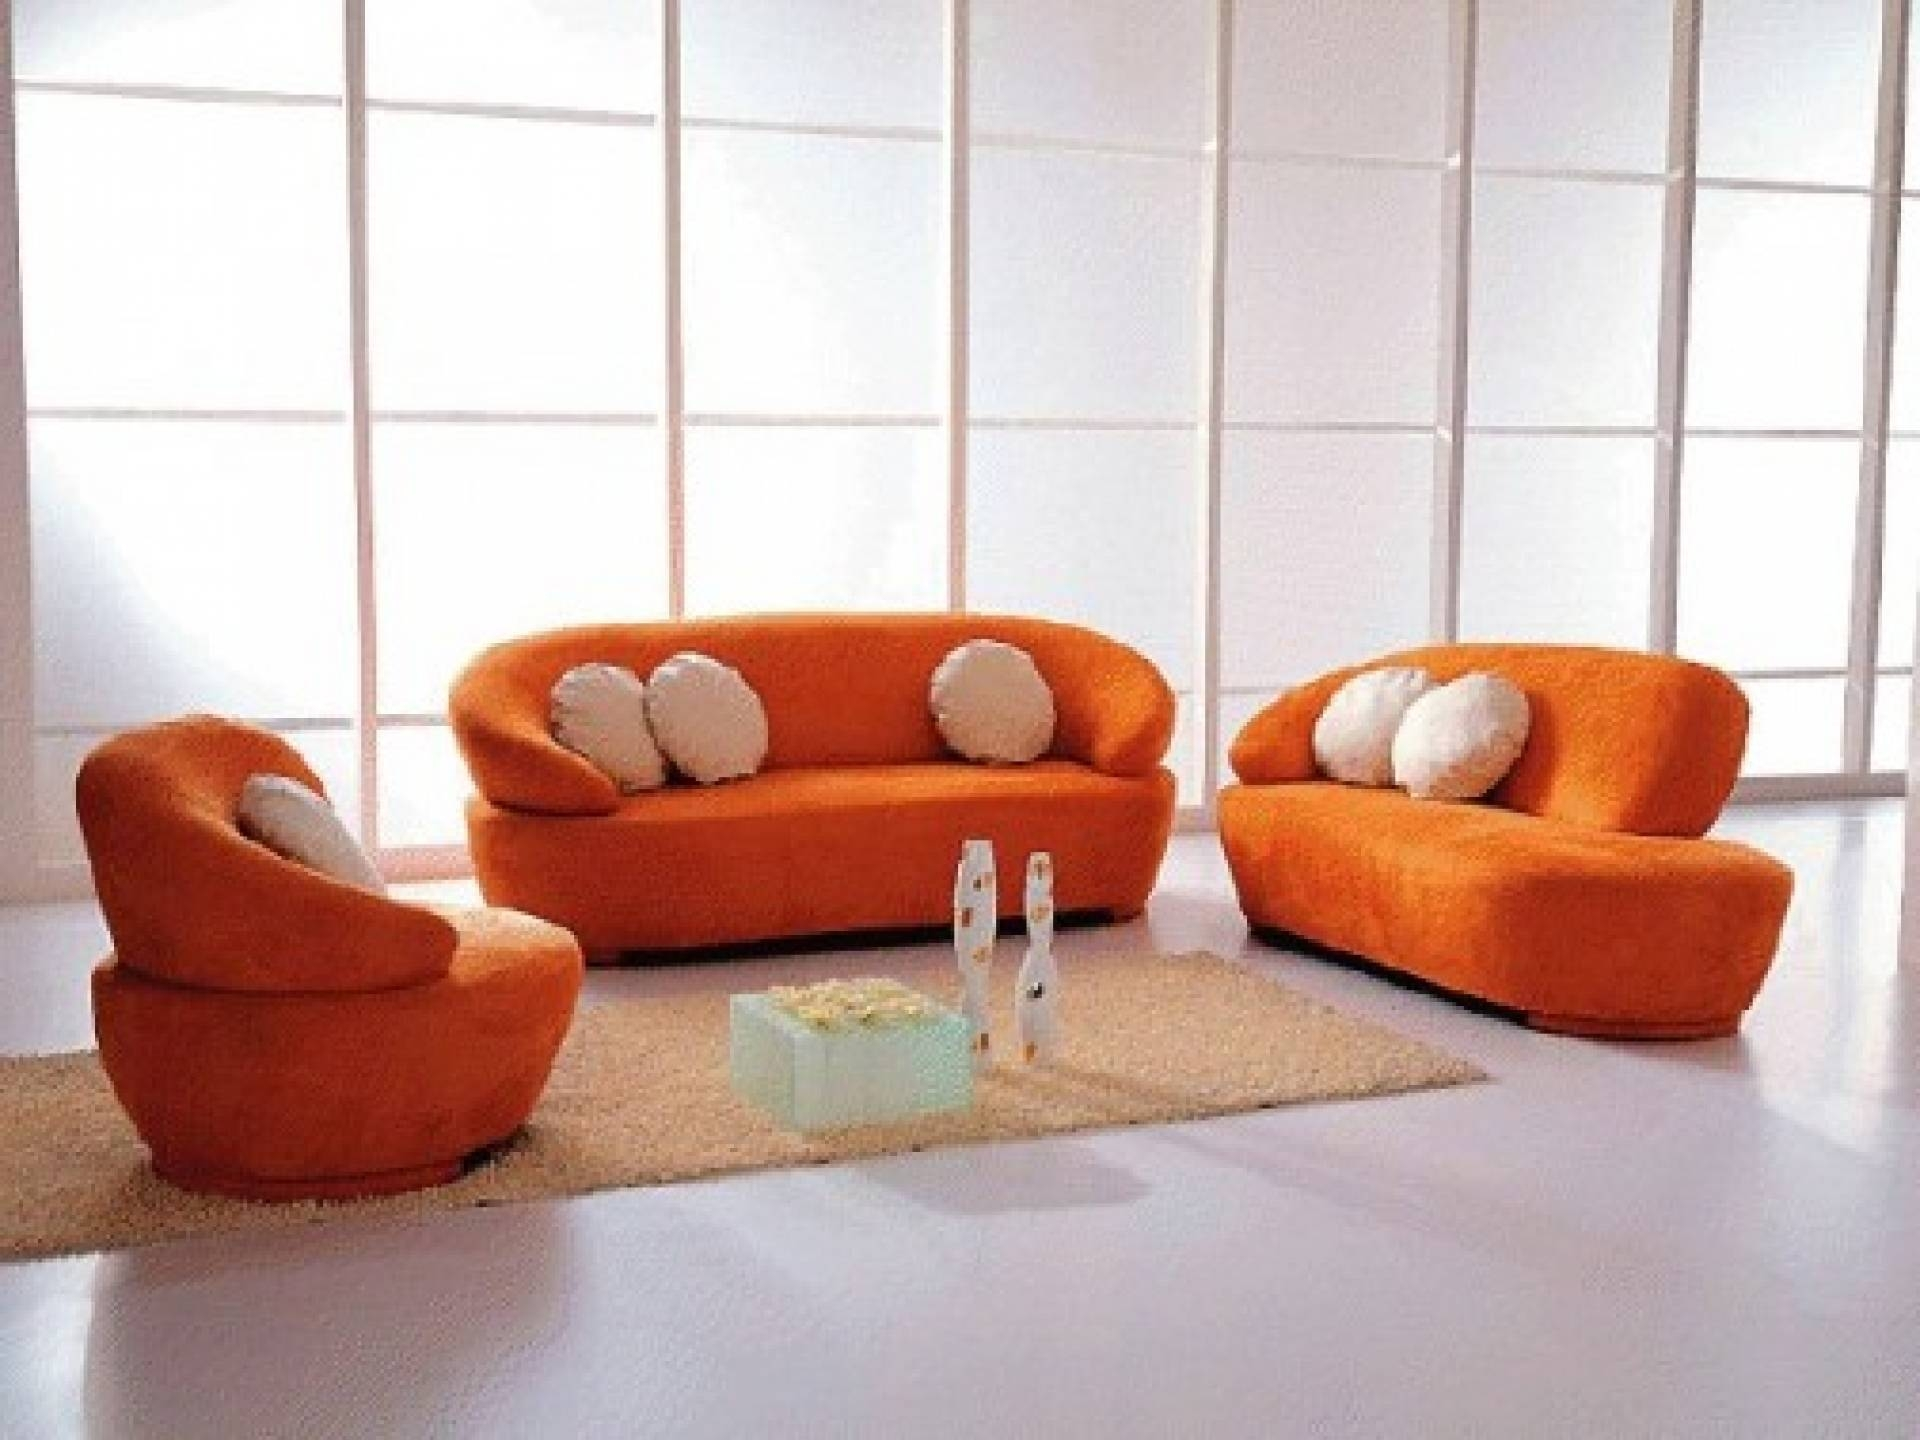 Orange Living Room Furniture - Fionaandersenphotography inside Living Room Sofa Chairs (Image 14 of 15)